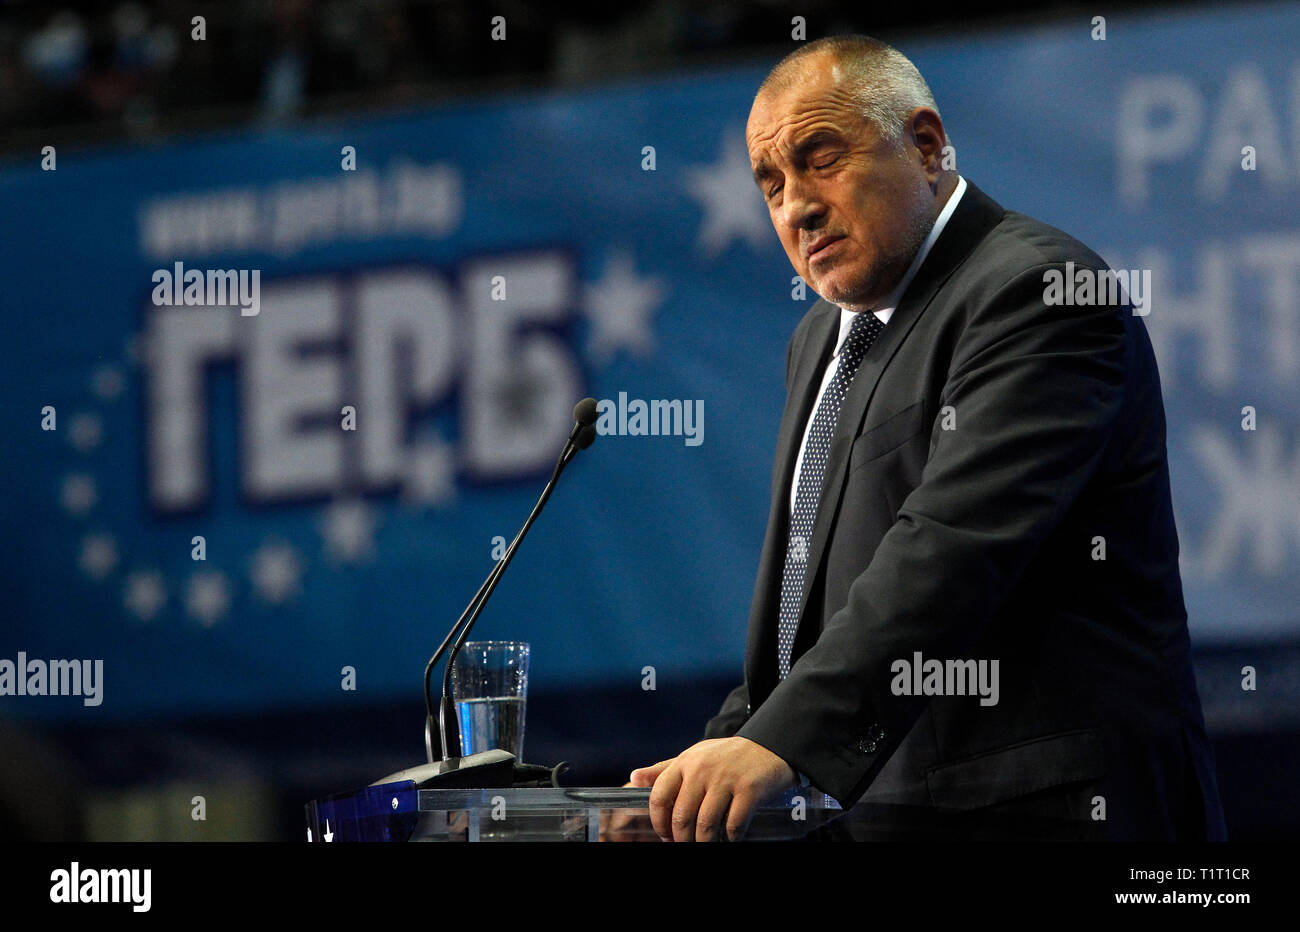 SOFIA, BULGARIA - OCTOBER 9: Bulgarian prime minister and head of political party GERB Boyko Borisov greets attendees, during launching 2016 President - Stock Image